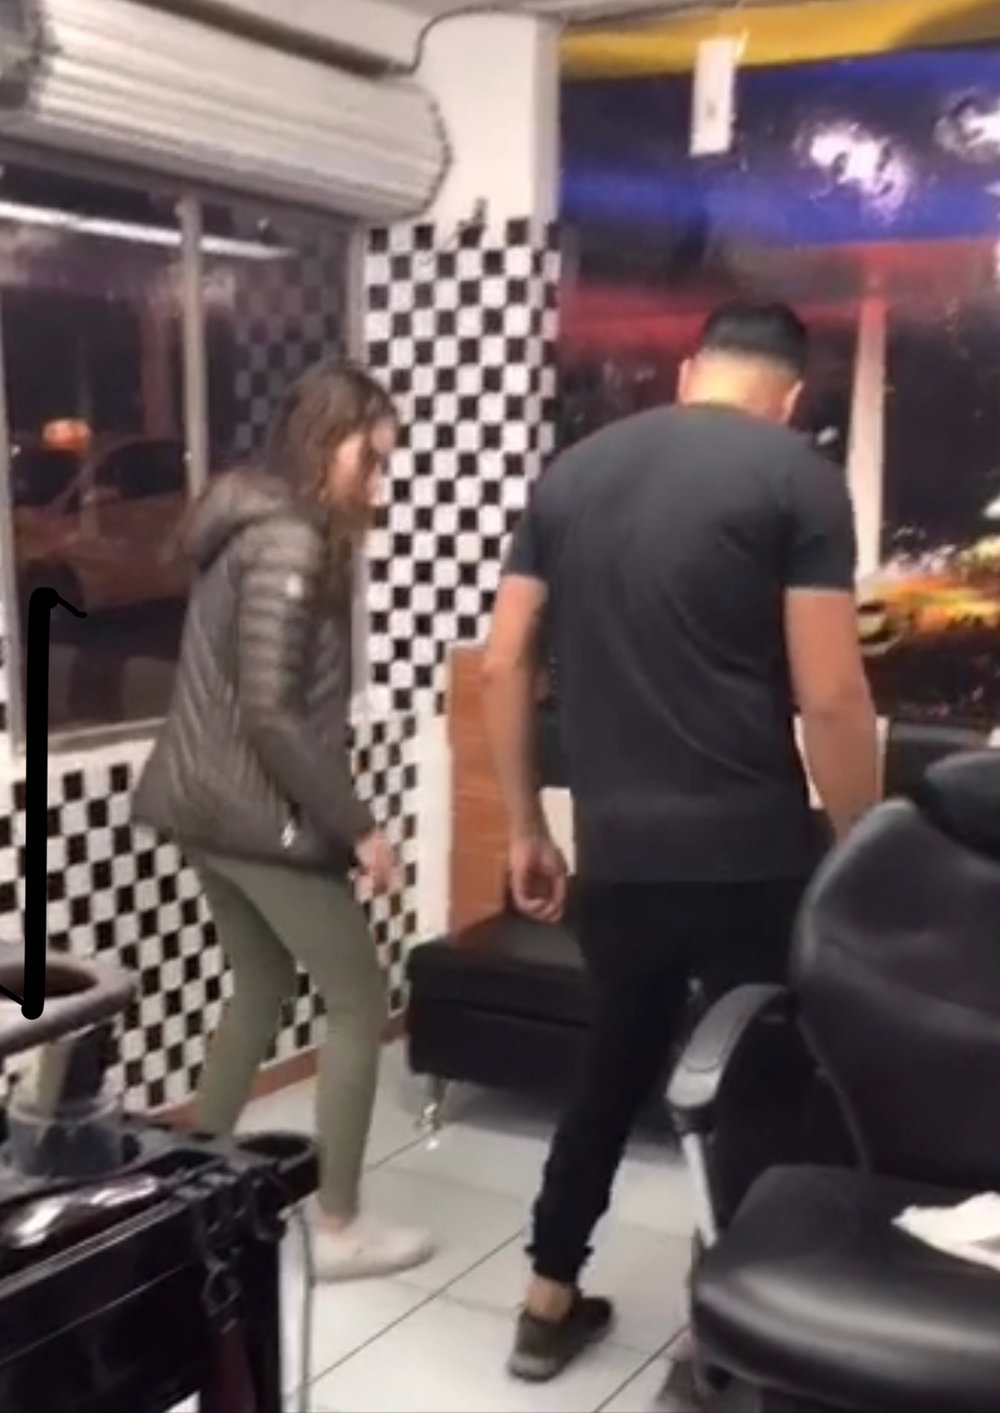 Niki learning the dance (the picture is blurry because it's a video still)